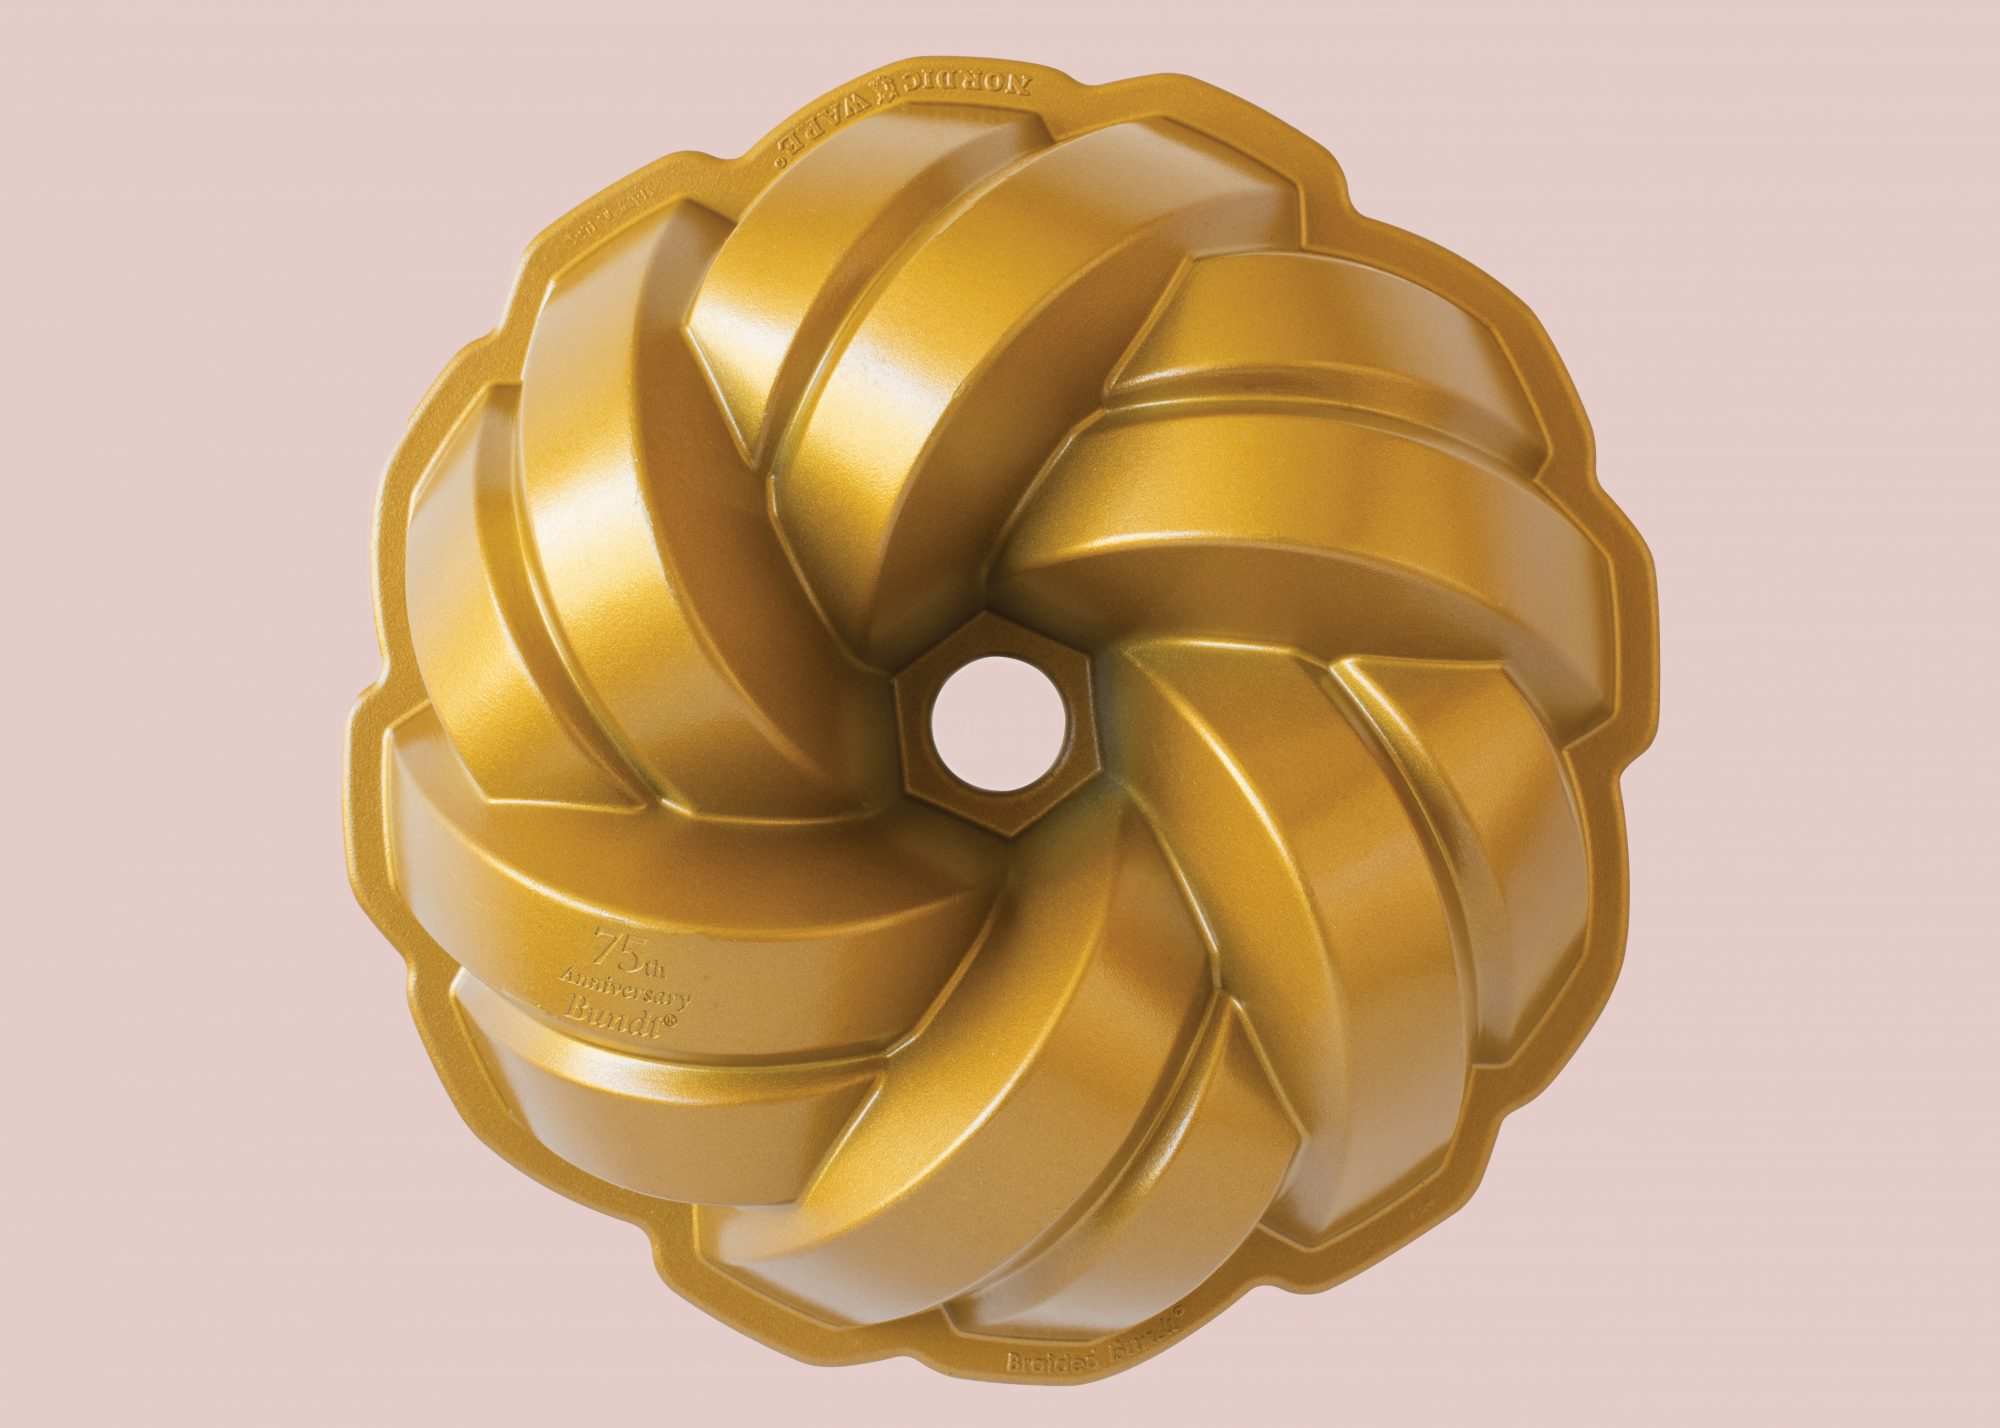 nordic ware 75th anniversary braided bundt loaf pan